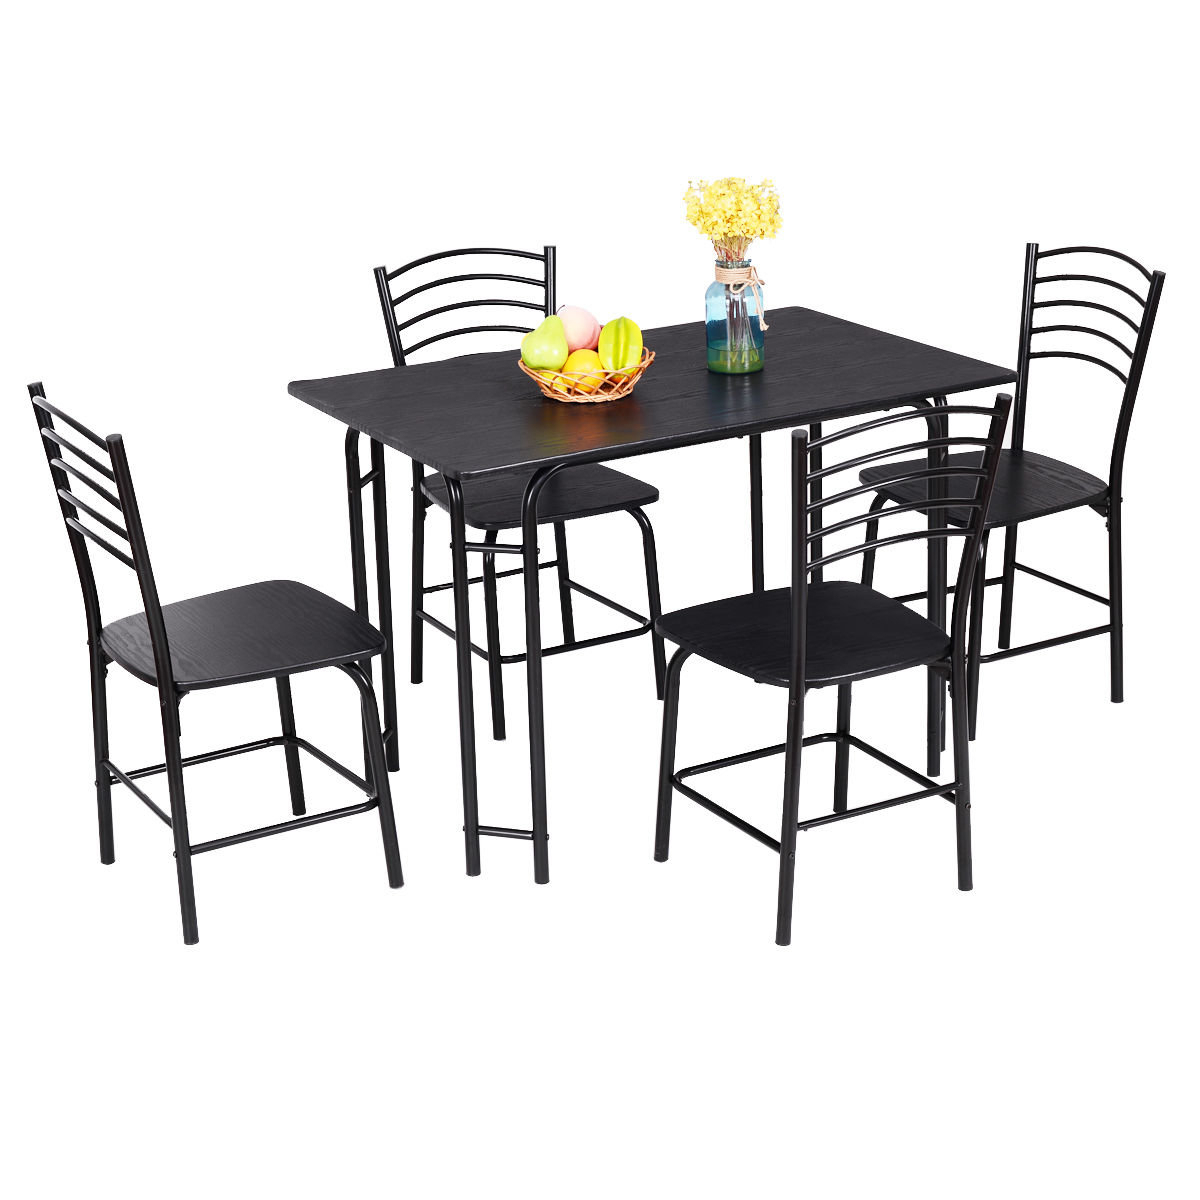 Ephraim 5 Piece Dining Set Pertaining To 2018 Ephraim 5 Piece Dining Sets (Photo 1 of 20)